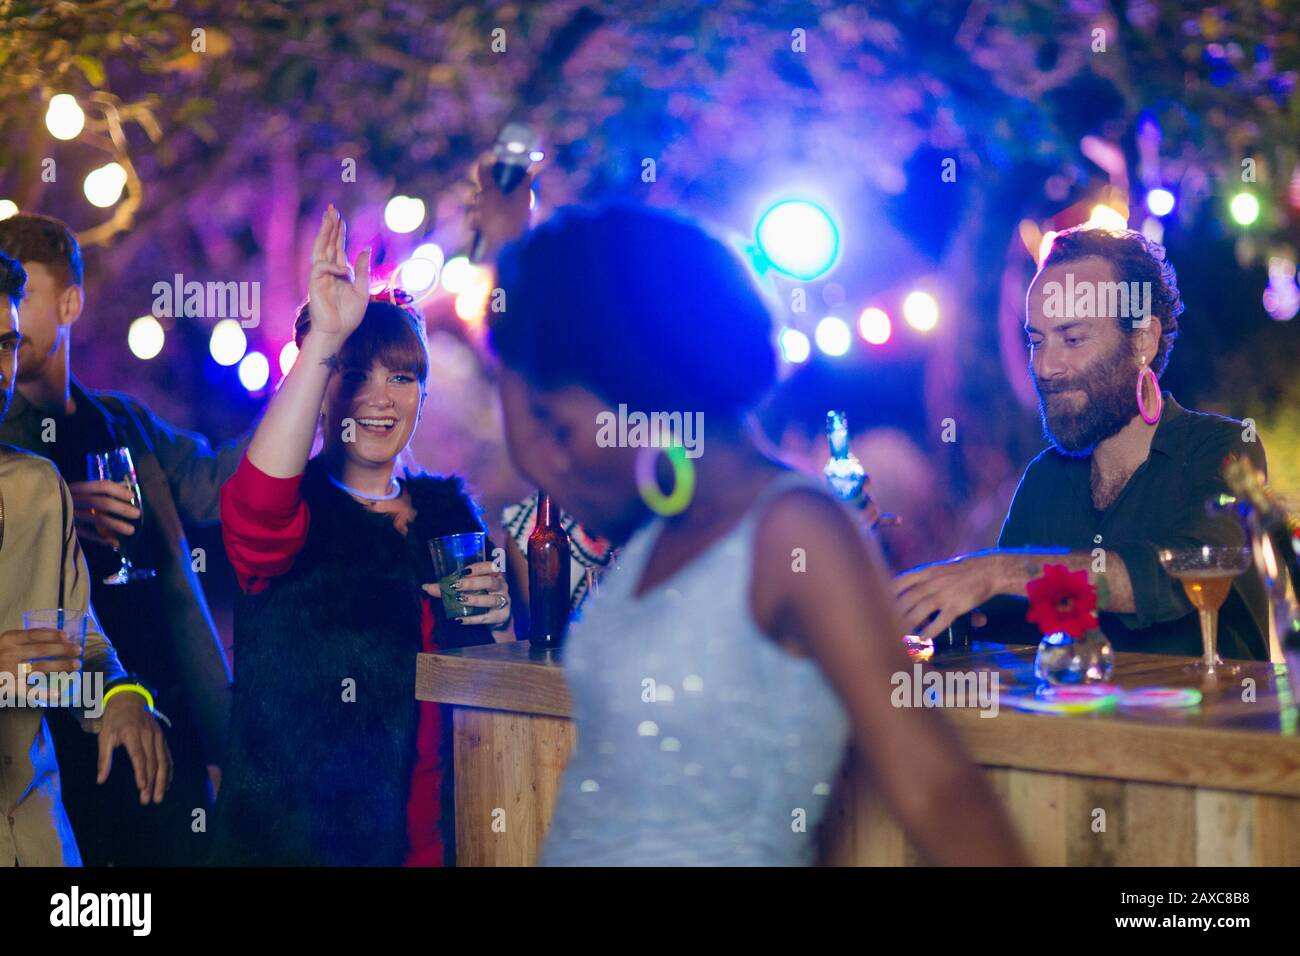 Friends dancing and drinking at garden party Stock Photo